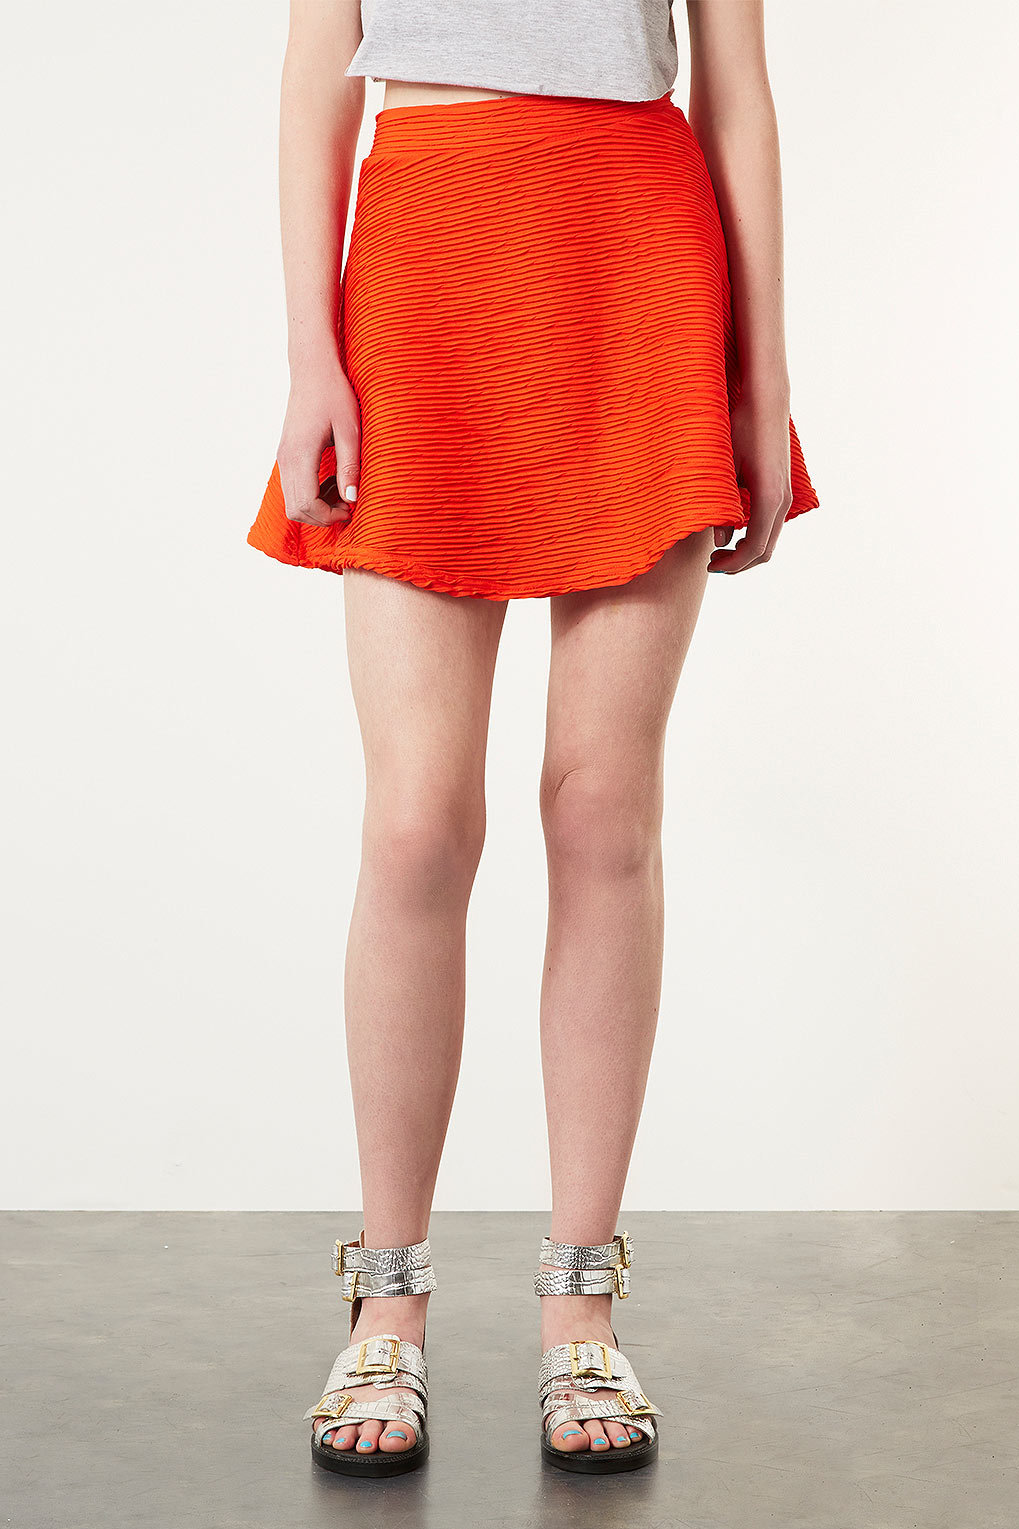 #Topshop                  #Skirt                    #Orange #Ottoman #Skater #Skirt #Skirts #Clothing #Topshop                    Orange Ottoman Skater Skirt - Skirts - Clothing - Topshop USA                                           http://www.seapai.com/product.aspx?PID=356660